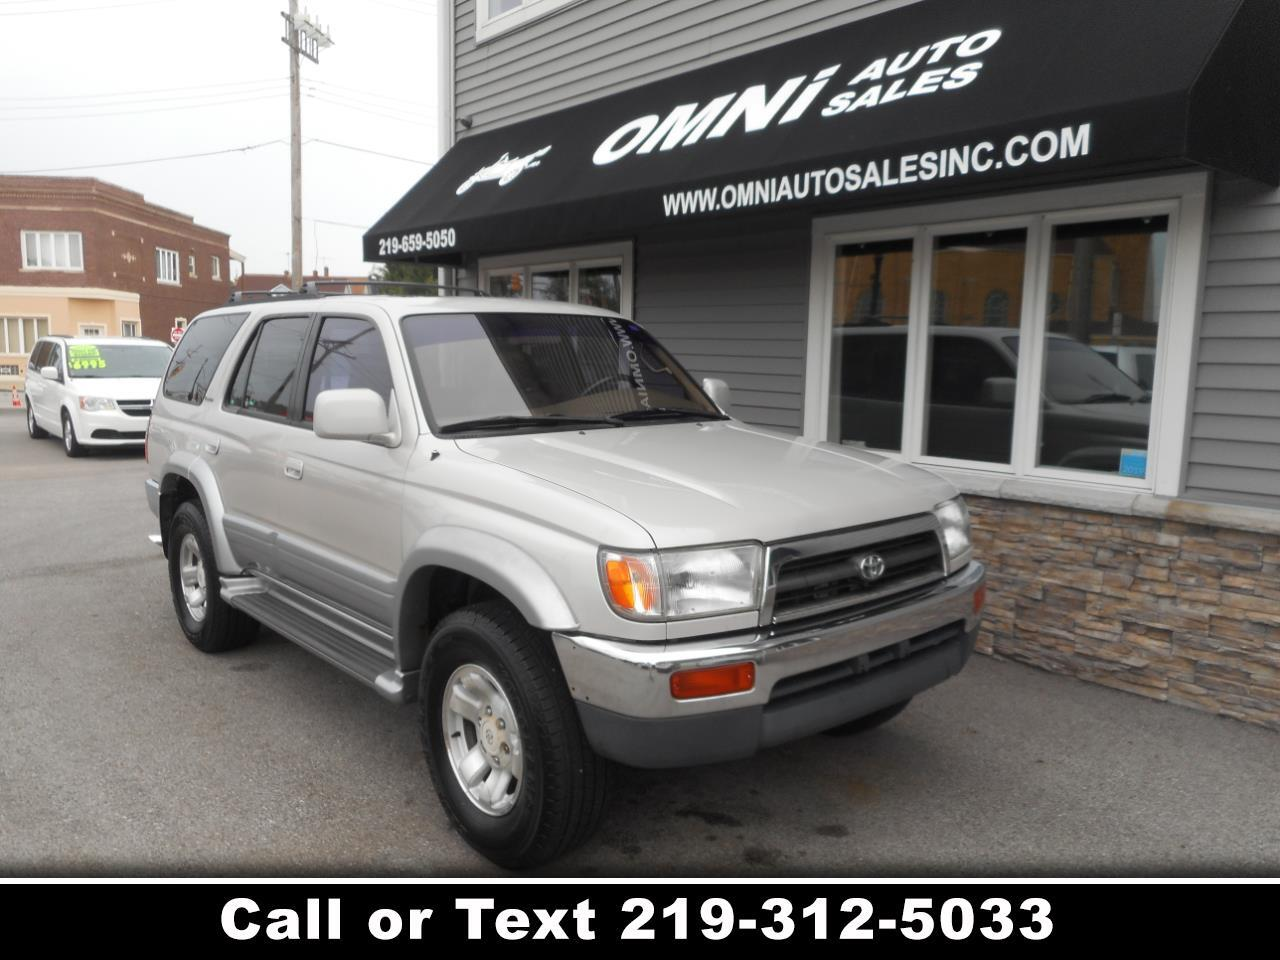 1996 Toyota 4Runner 4dr Auto 4WD Limited 3.4L